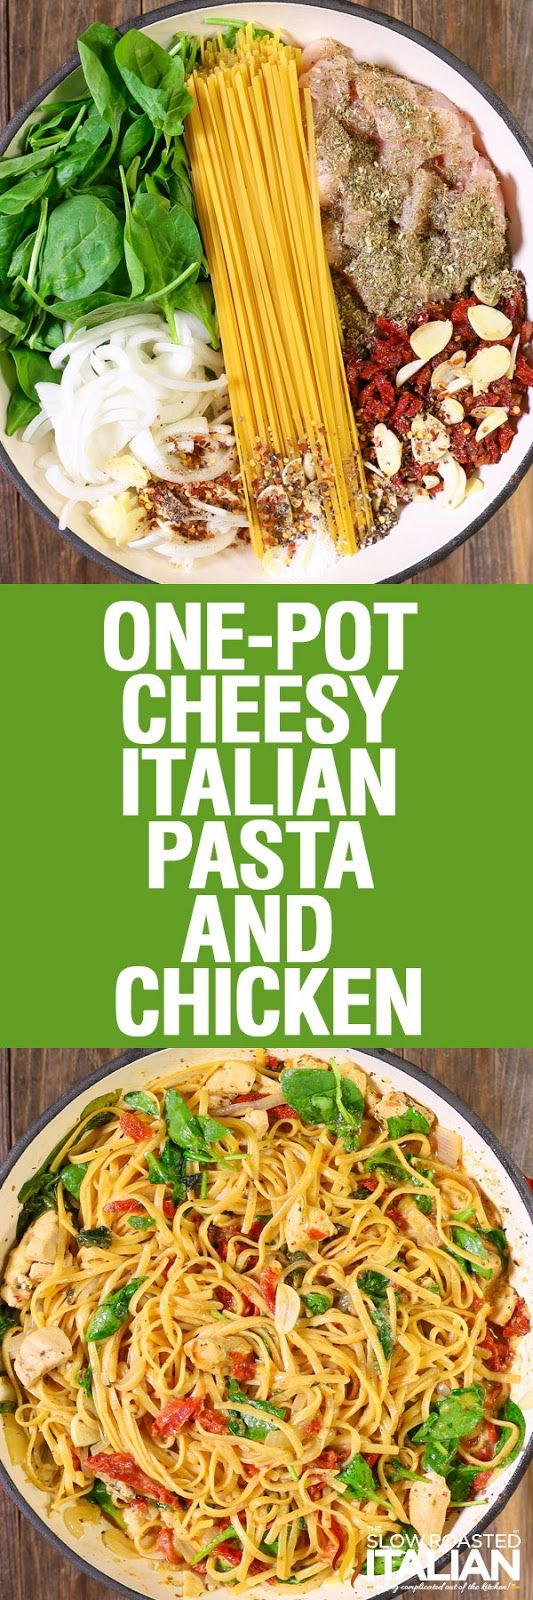 One-Pot Cheesy Italian Pasta and Chicken (with VIDEO) | Savoury ...